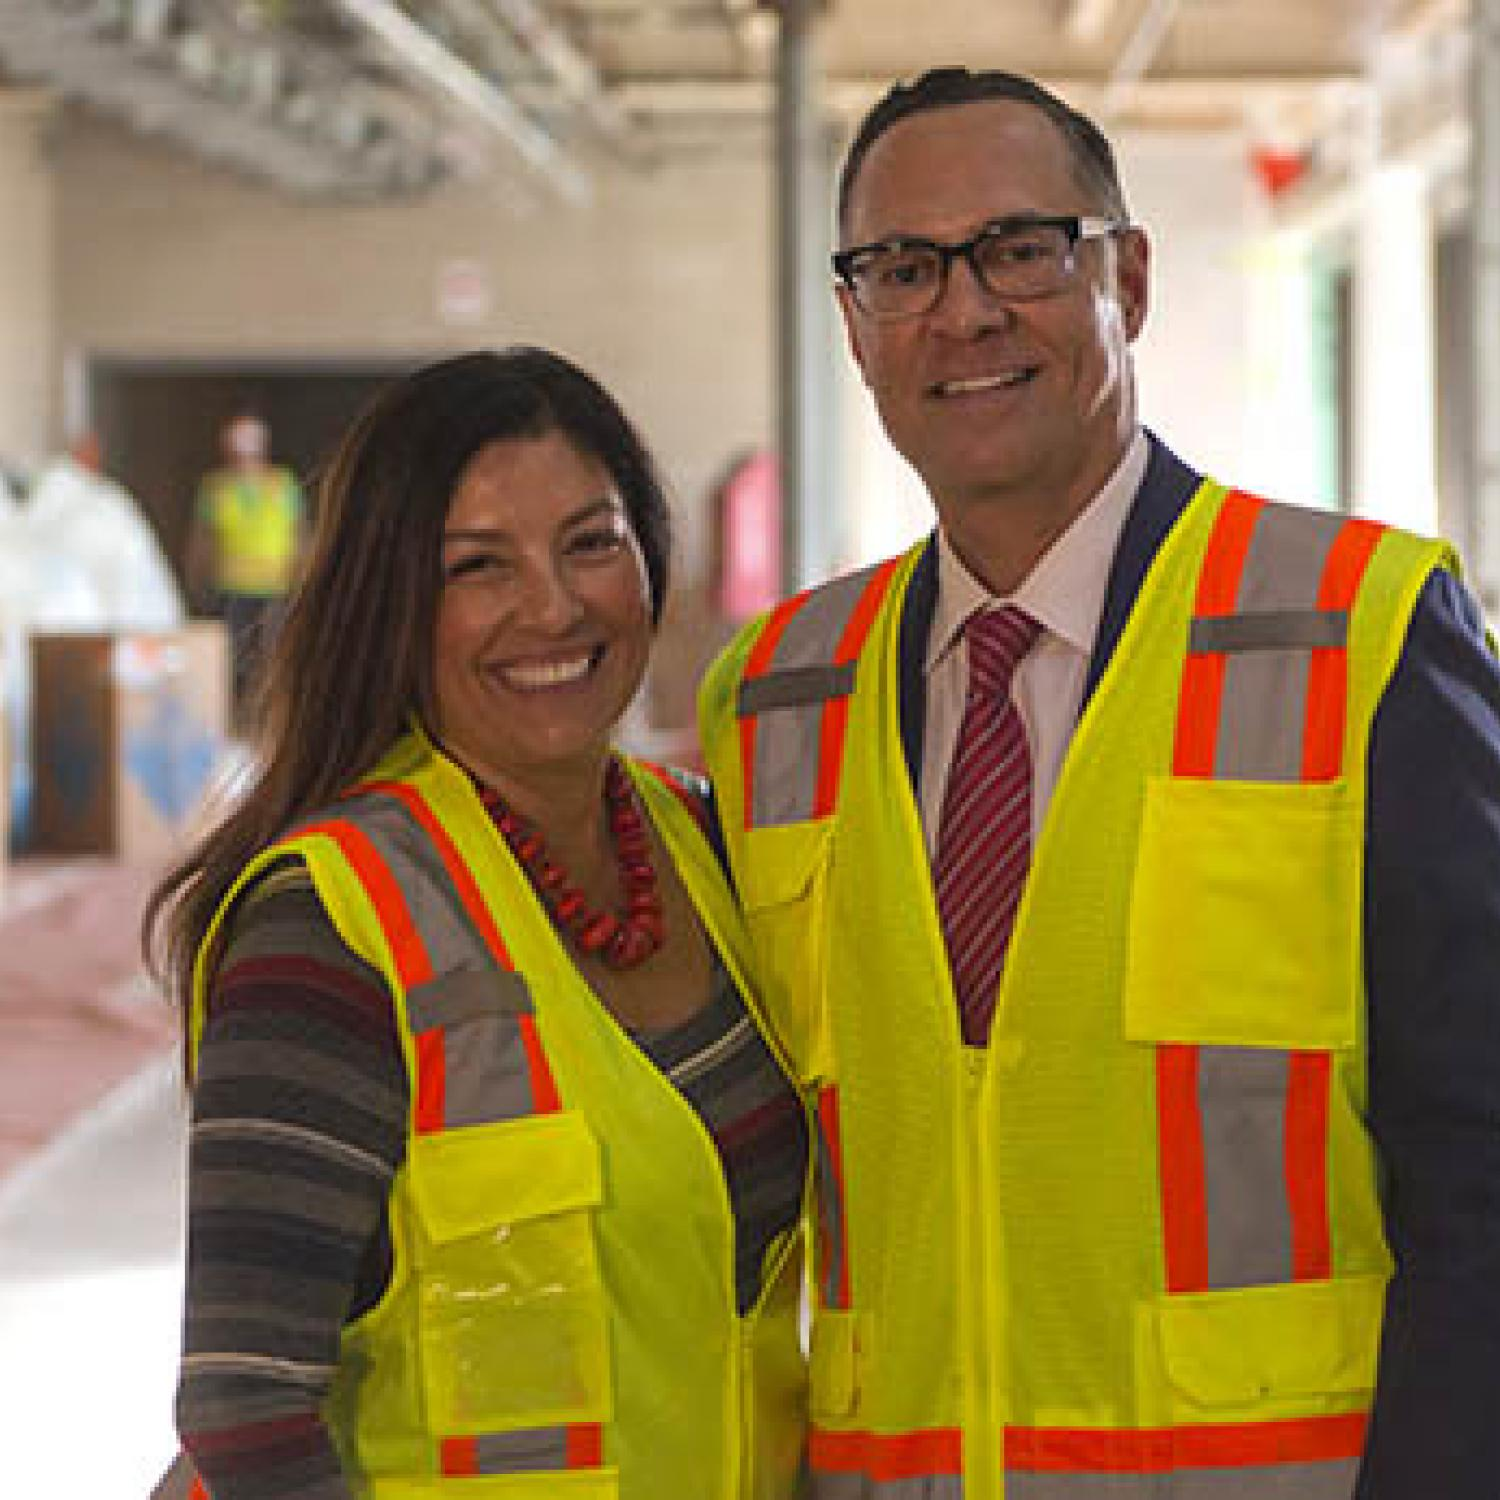 Lola and Rob Salazar donate $10 million to student wellness center